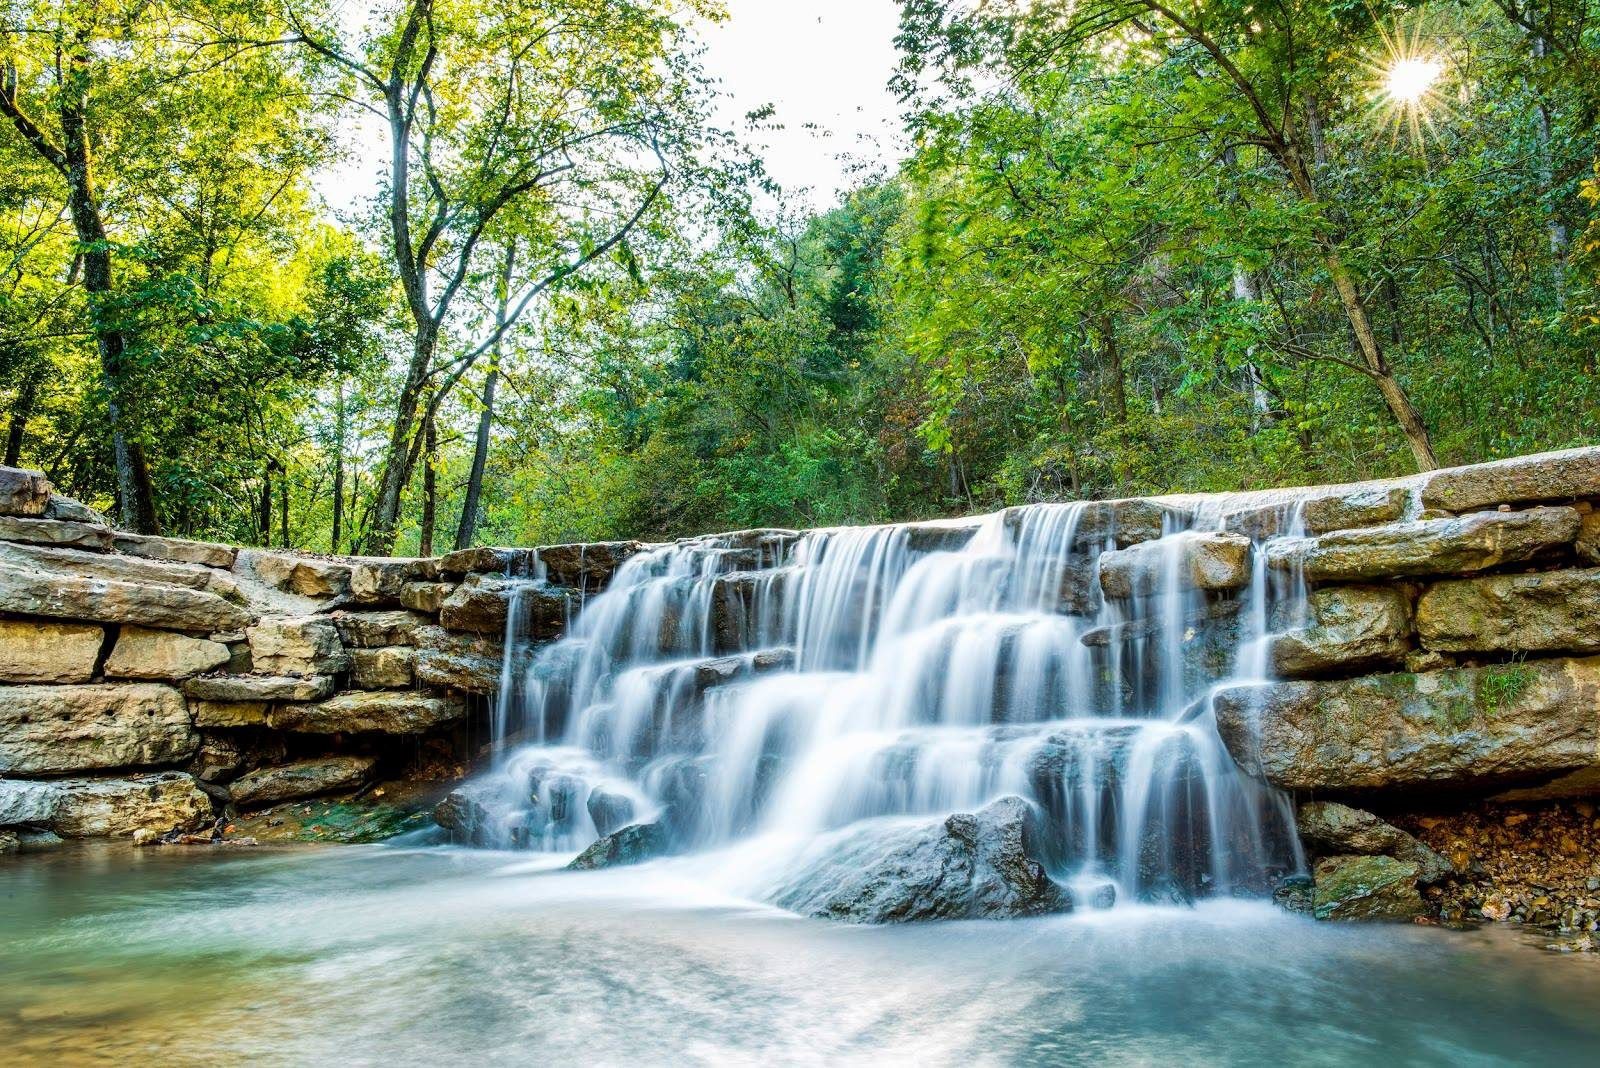 Best Hiking Trails In Southwest Missouri And Northwest Arkansas Missouri Hiking Hiking Trails In Missouri Southwest Missouri